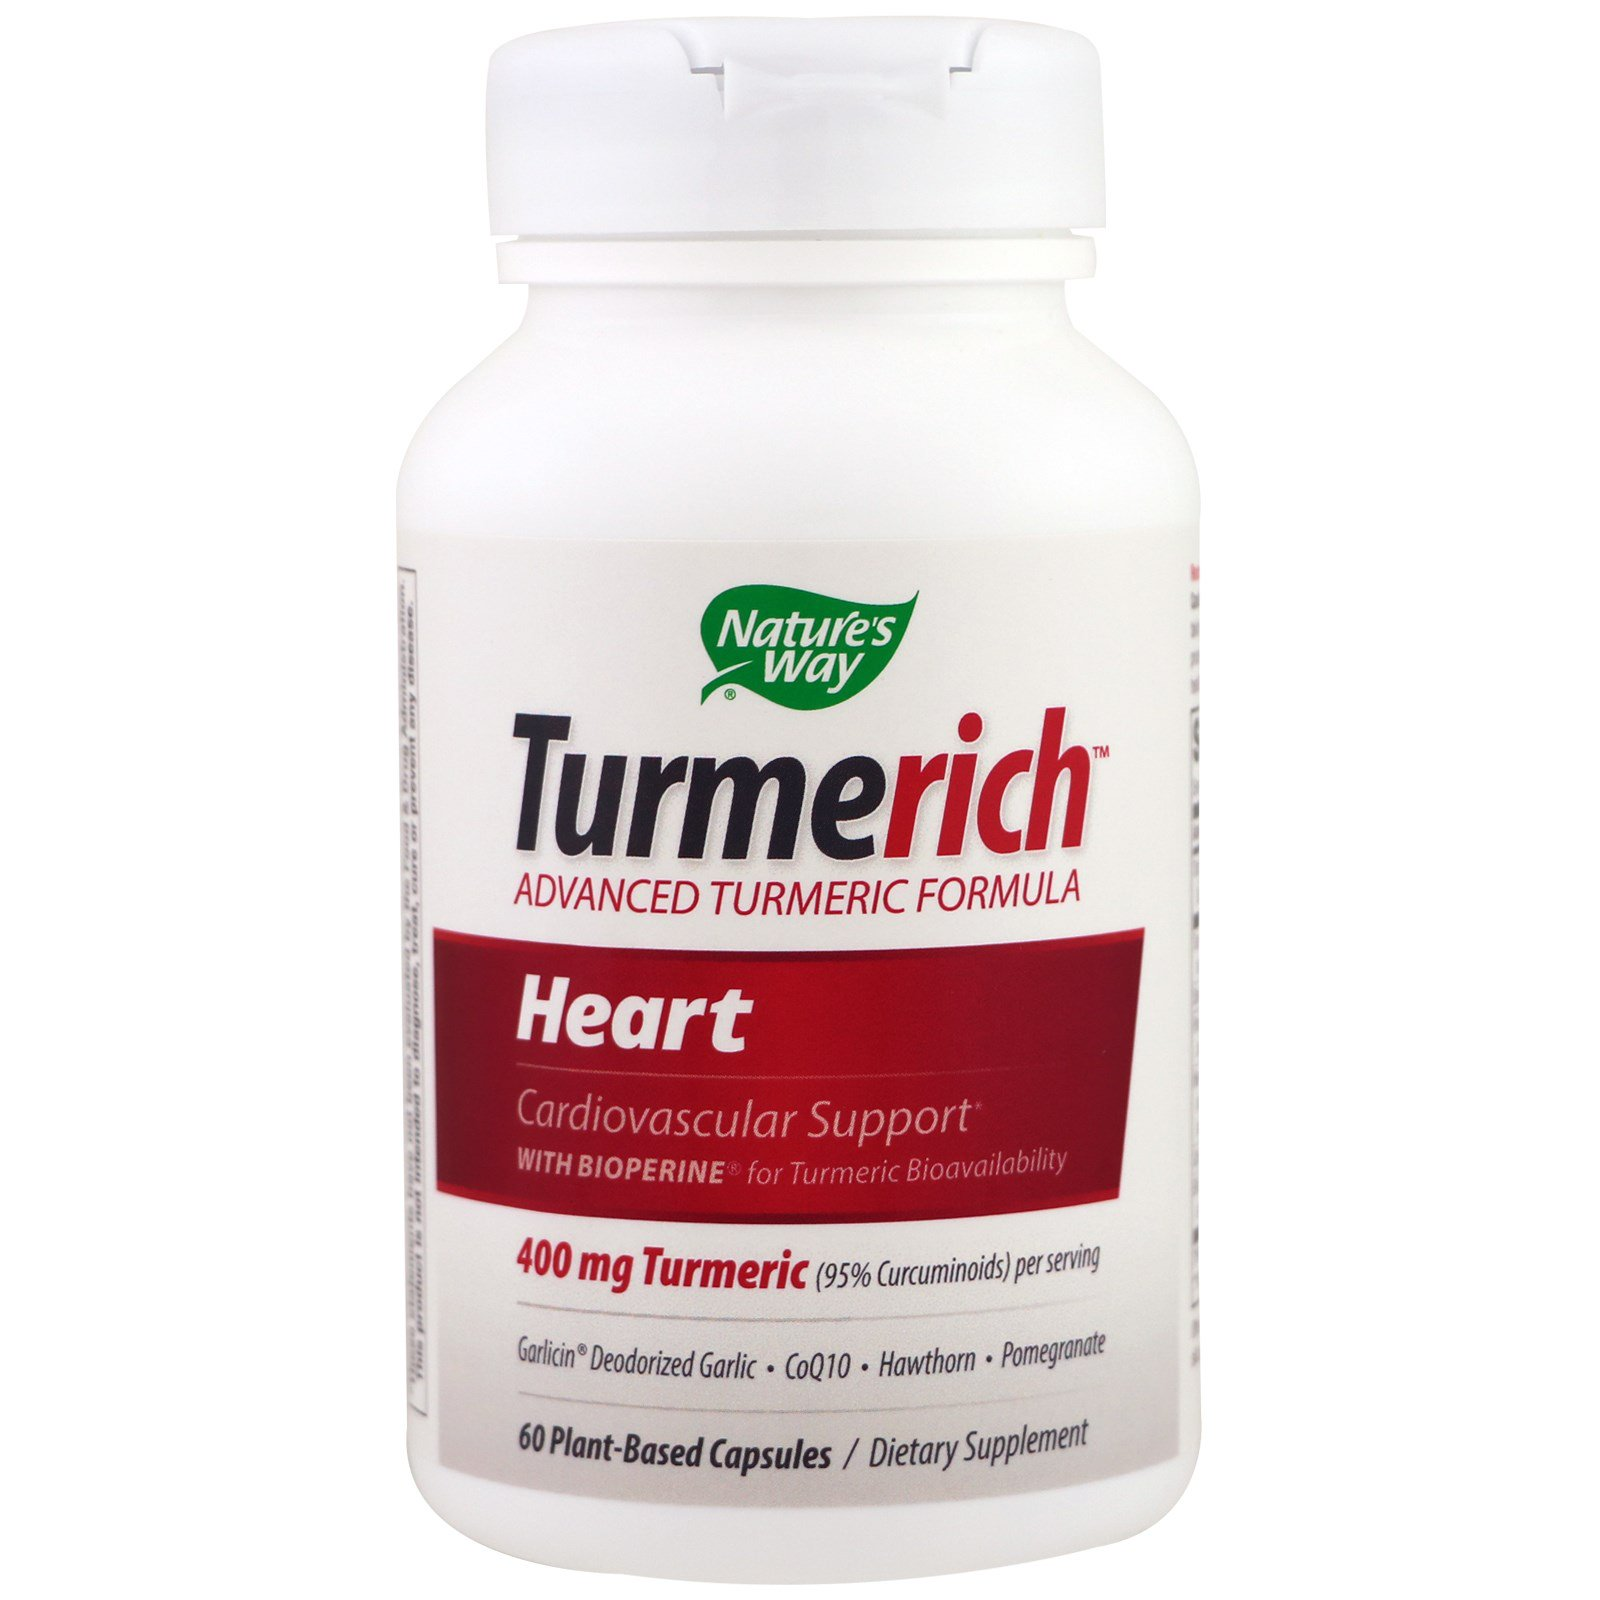 Nature's Way, Turmerich Heart, 400 mg, 60 Plant-Based Capsules